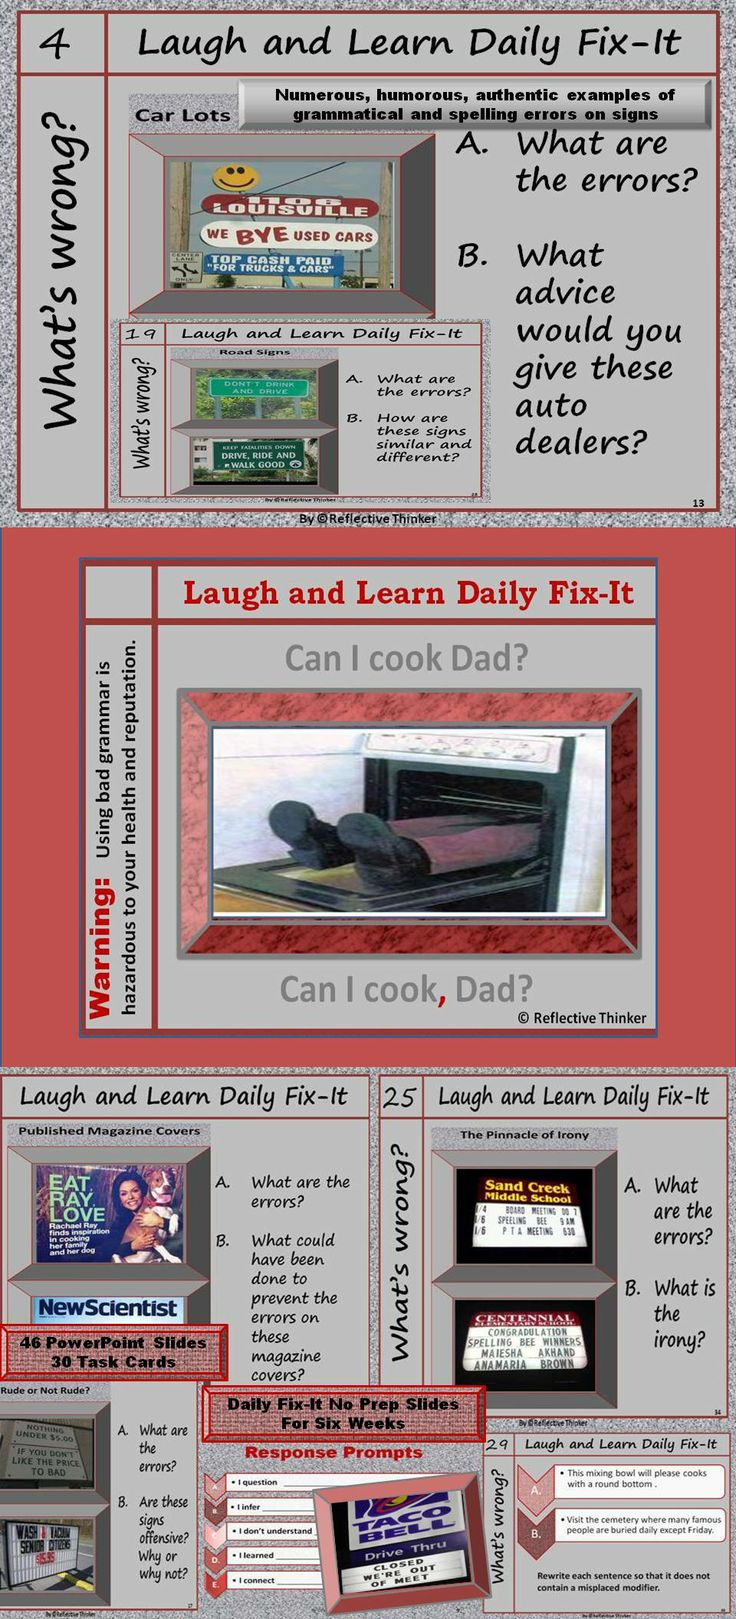 LAUGHTER stimulates both sides of the brain which increases alertness and enhances retention of information.  This well-organized PowerPoint resource includes numerous, humorous, and authentic examples of incorrect grammar, commonly misspelled words, and more.  Included are literacy center ideas, 32 task cards, 43 PowerPoint slides, and no prep options. #dailyorallanguage #dailyfix-it #humor #reflectivethinker #teacherspayteachers